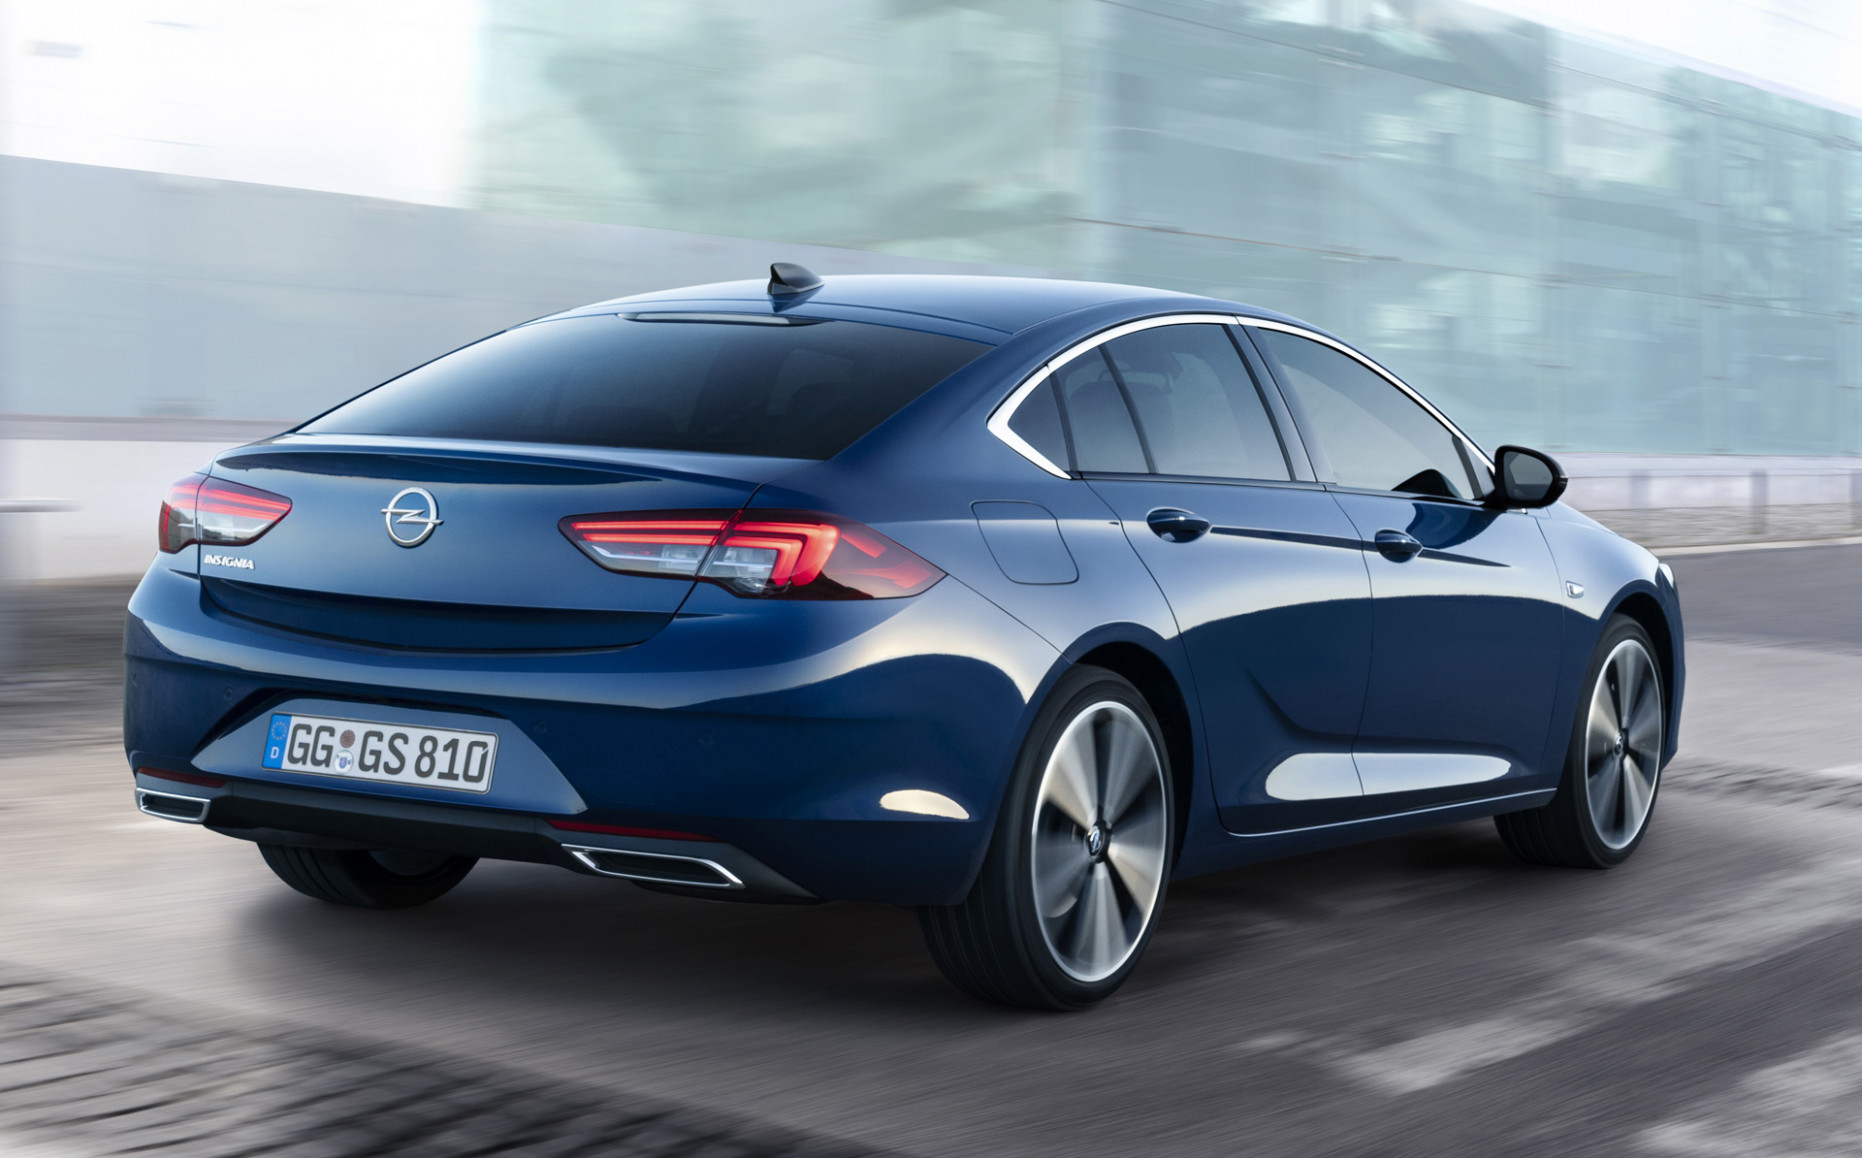 Opel Insignia 7 Cosmo in Qatar: New Car Prices, Specs, Reviews ..